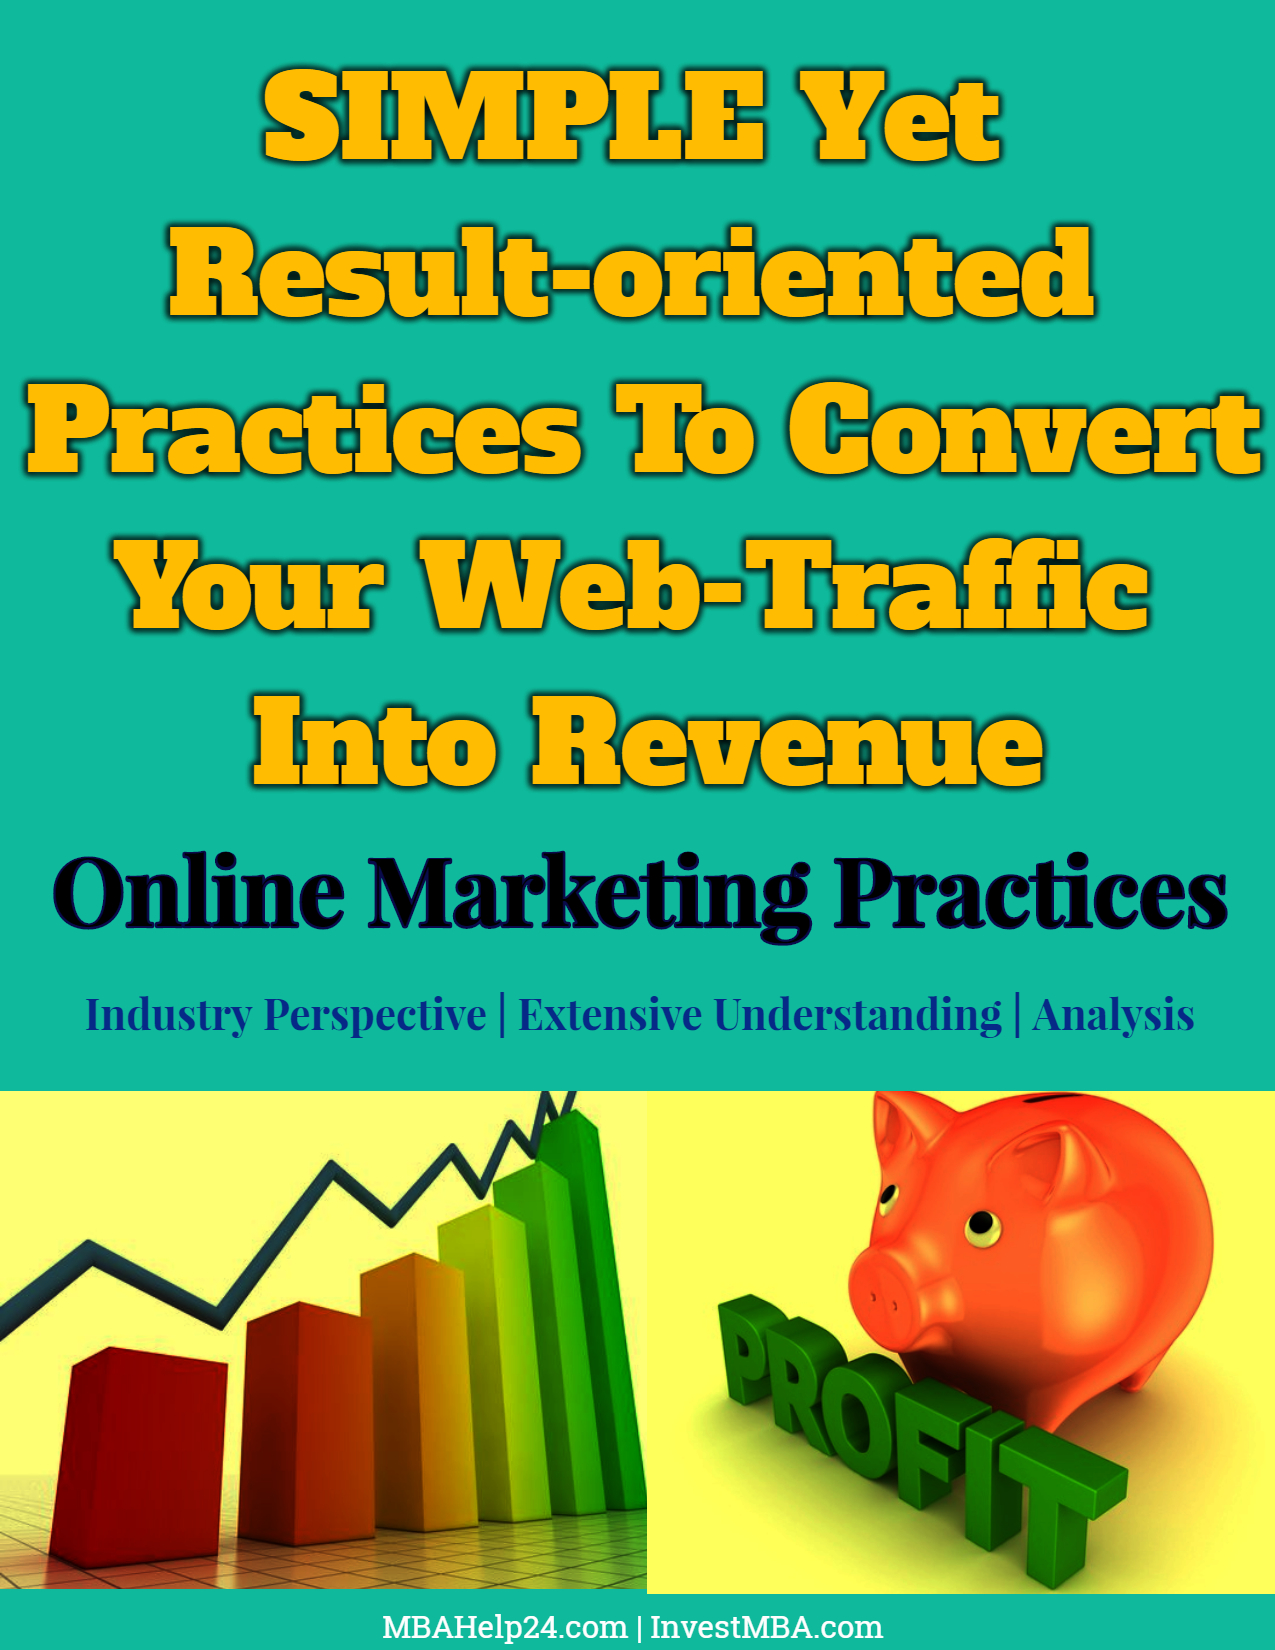 SIMPLE Yet Result-oriented Practices To Convert Your Web-Traffic Into Revenue